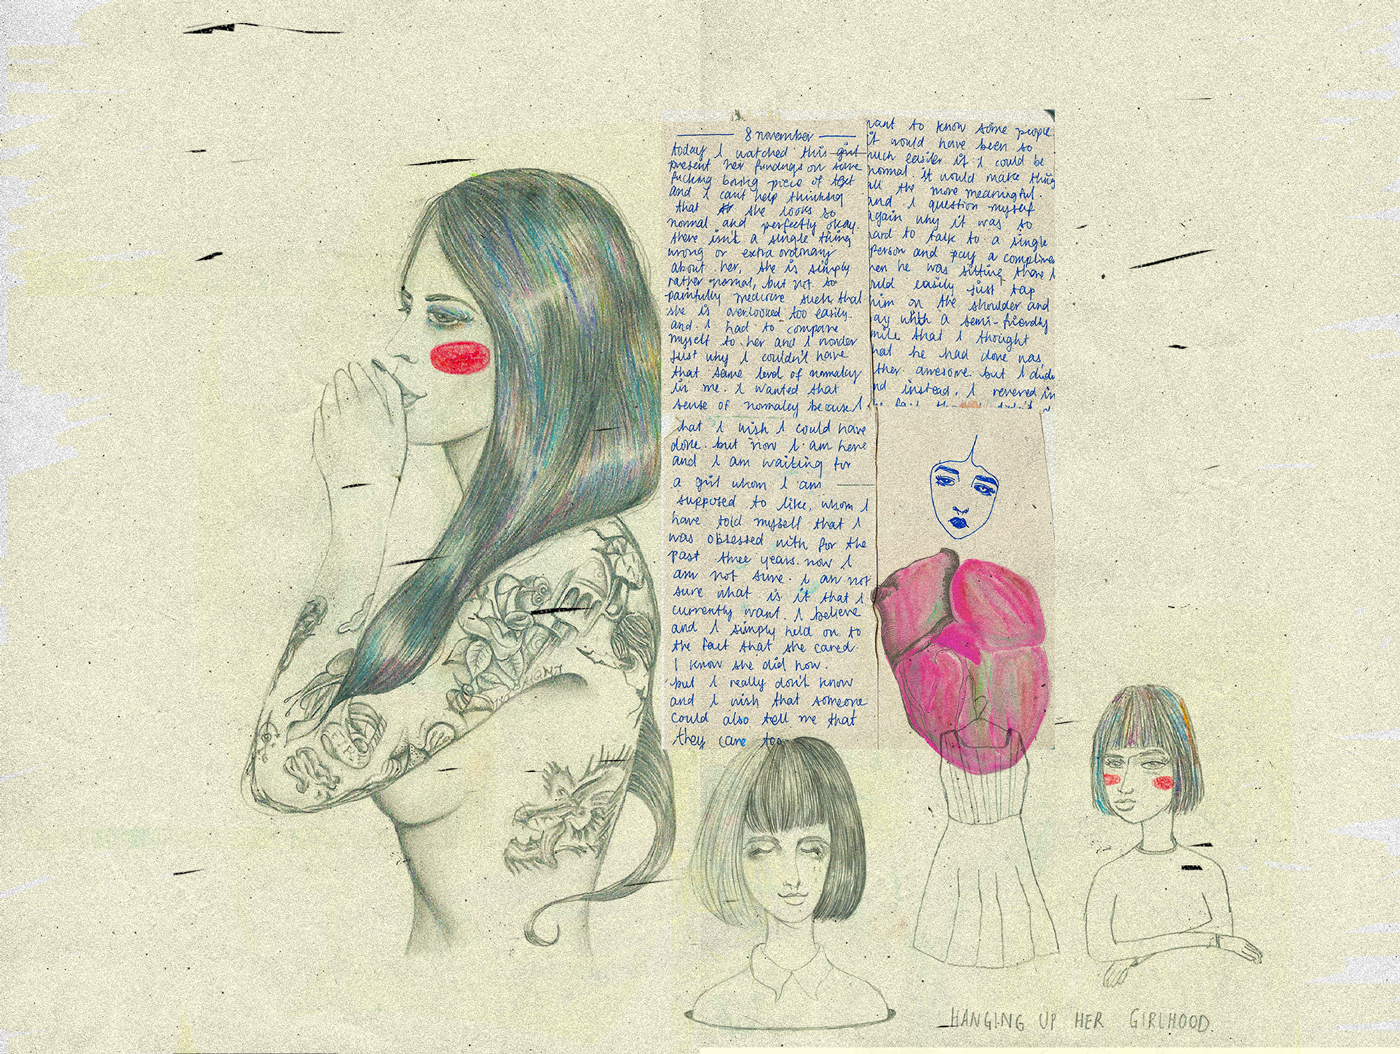 rainbow hair, tattoos, womanhood, doodles, diary